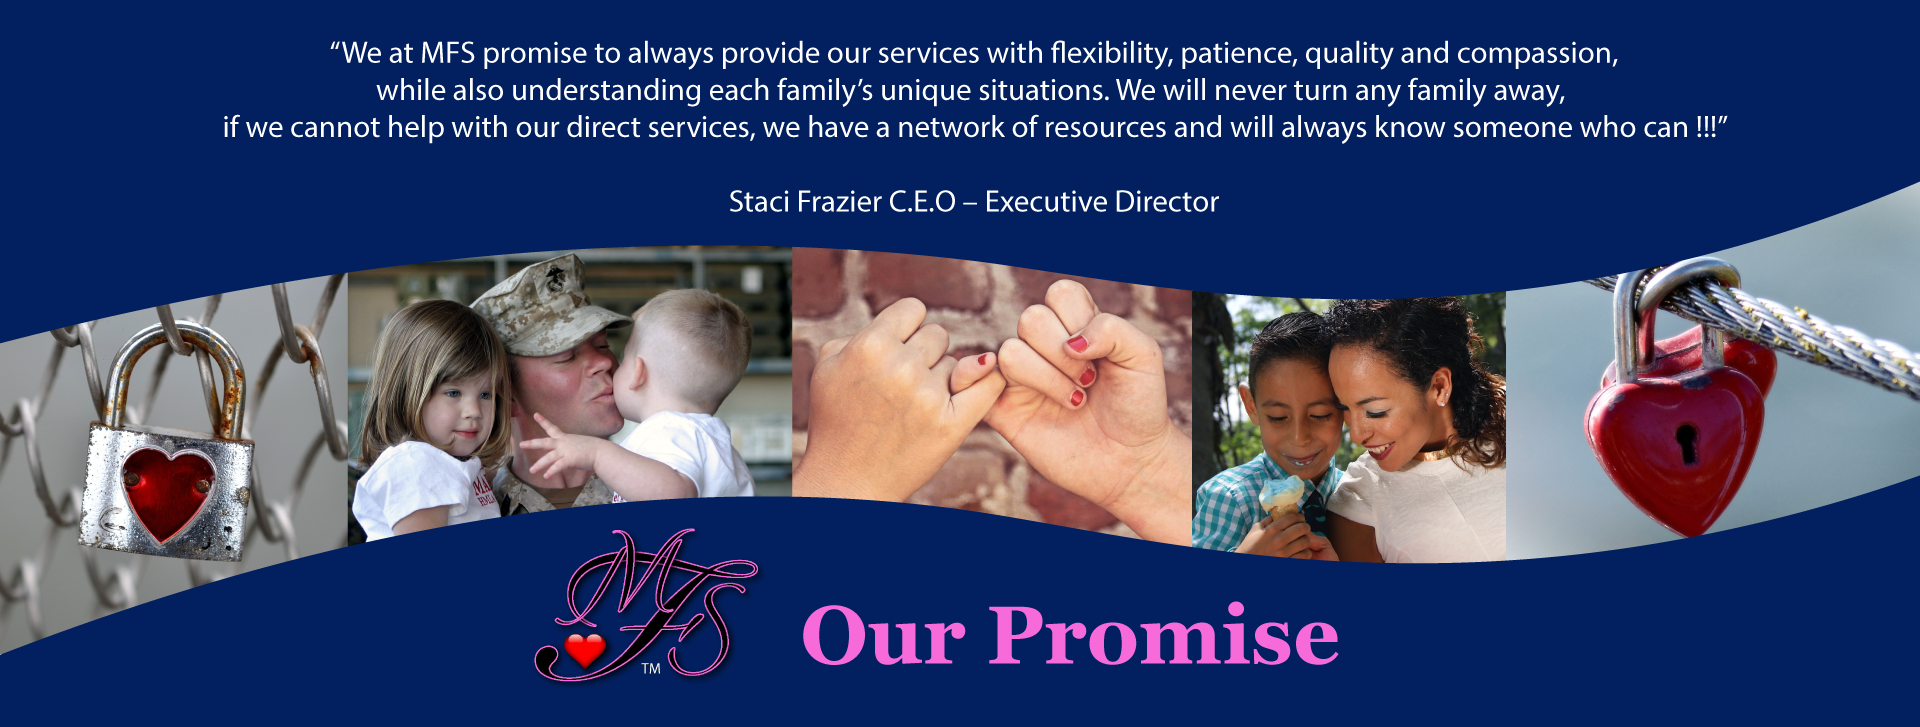 our promise header